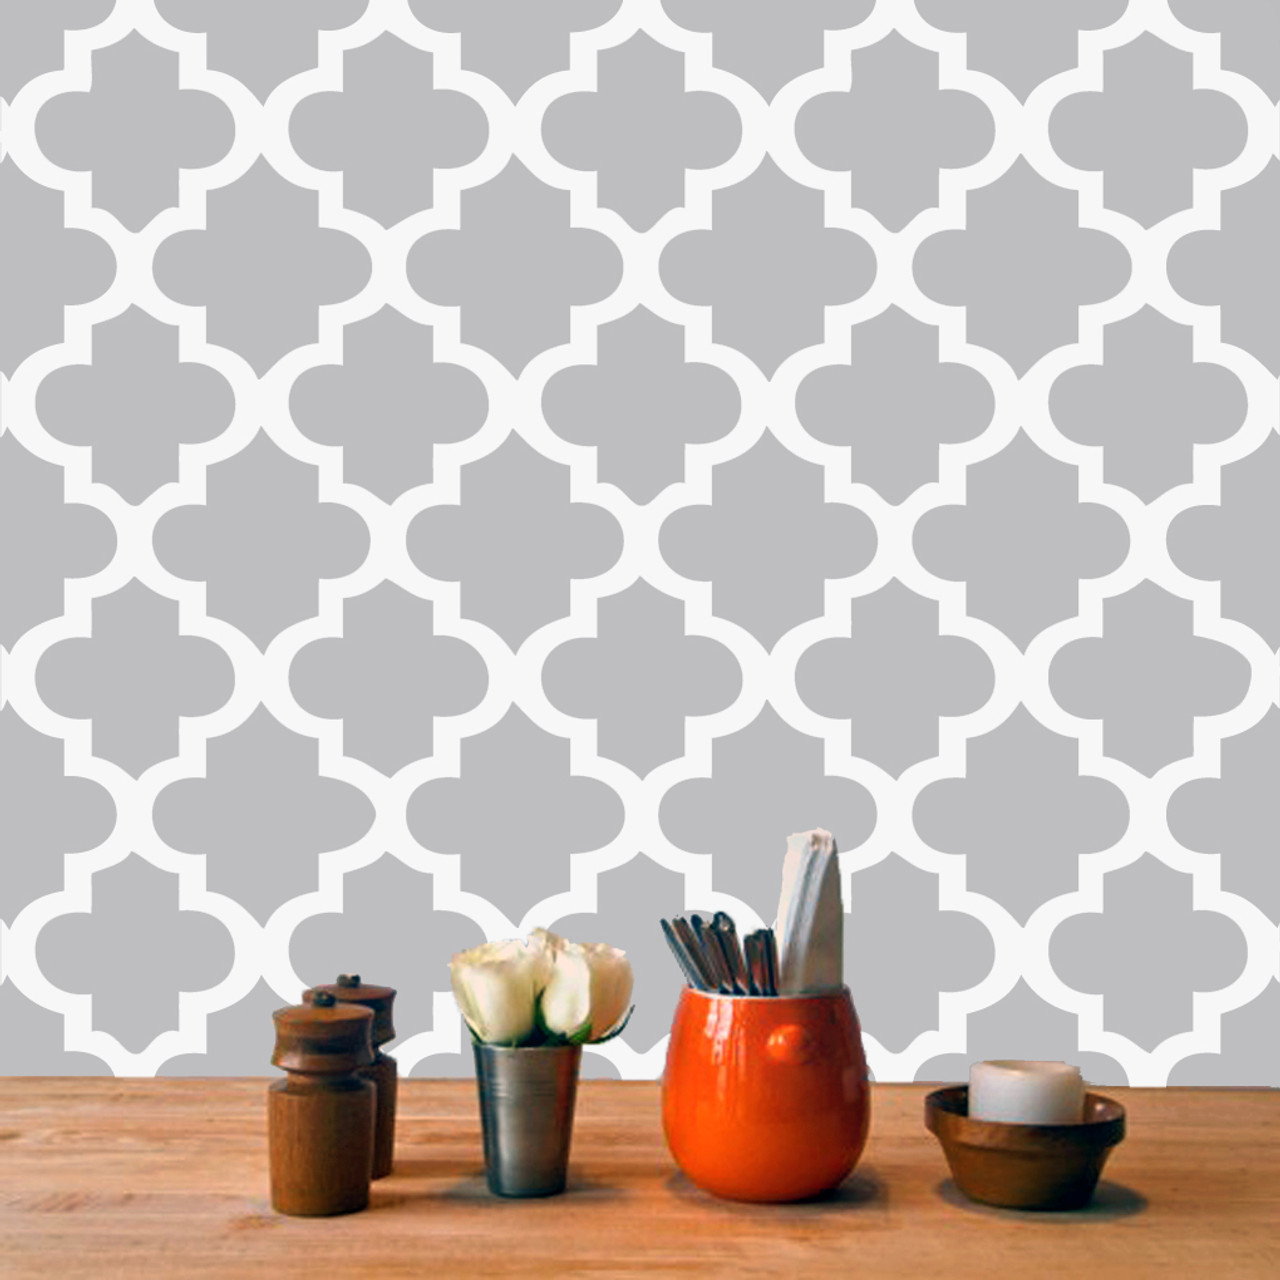 - Moroccan Tile Backsplash Wall Decals Home Décor Wall Decals